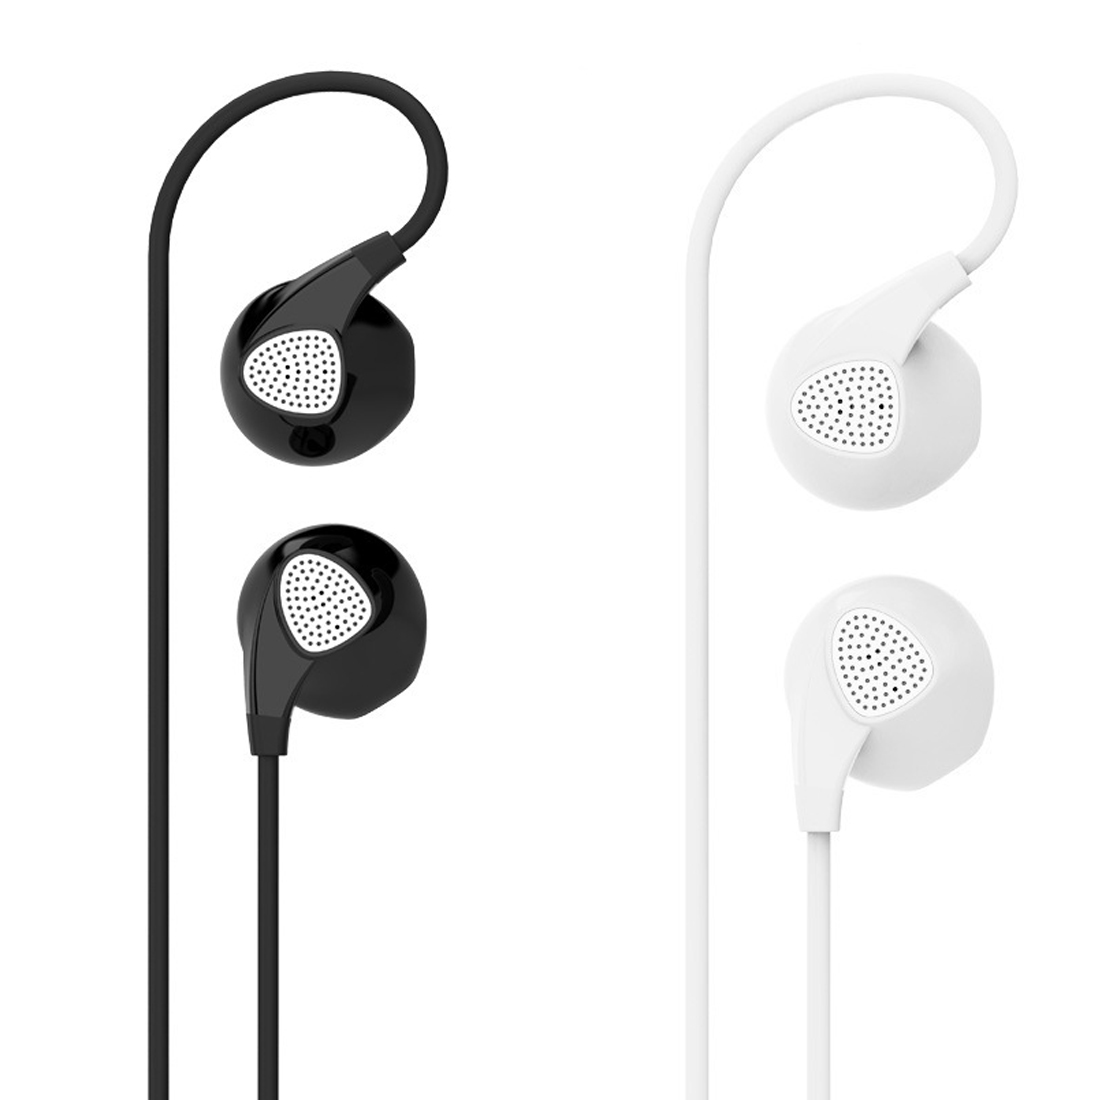 Marsnaska 100% New Earphone Noise Canceling Headset with Microphone Stereo Earpods for mobile phone iPhone Xiaomi MP3 Gaming marsnaska new shoelaces noise cancellation earpiece stereo metal bass earphone 3 5mm earbuds with mic for iphone xiaomi samsung